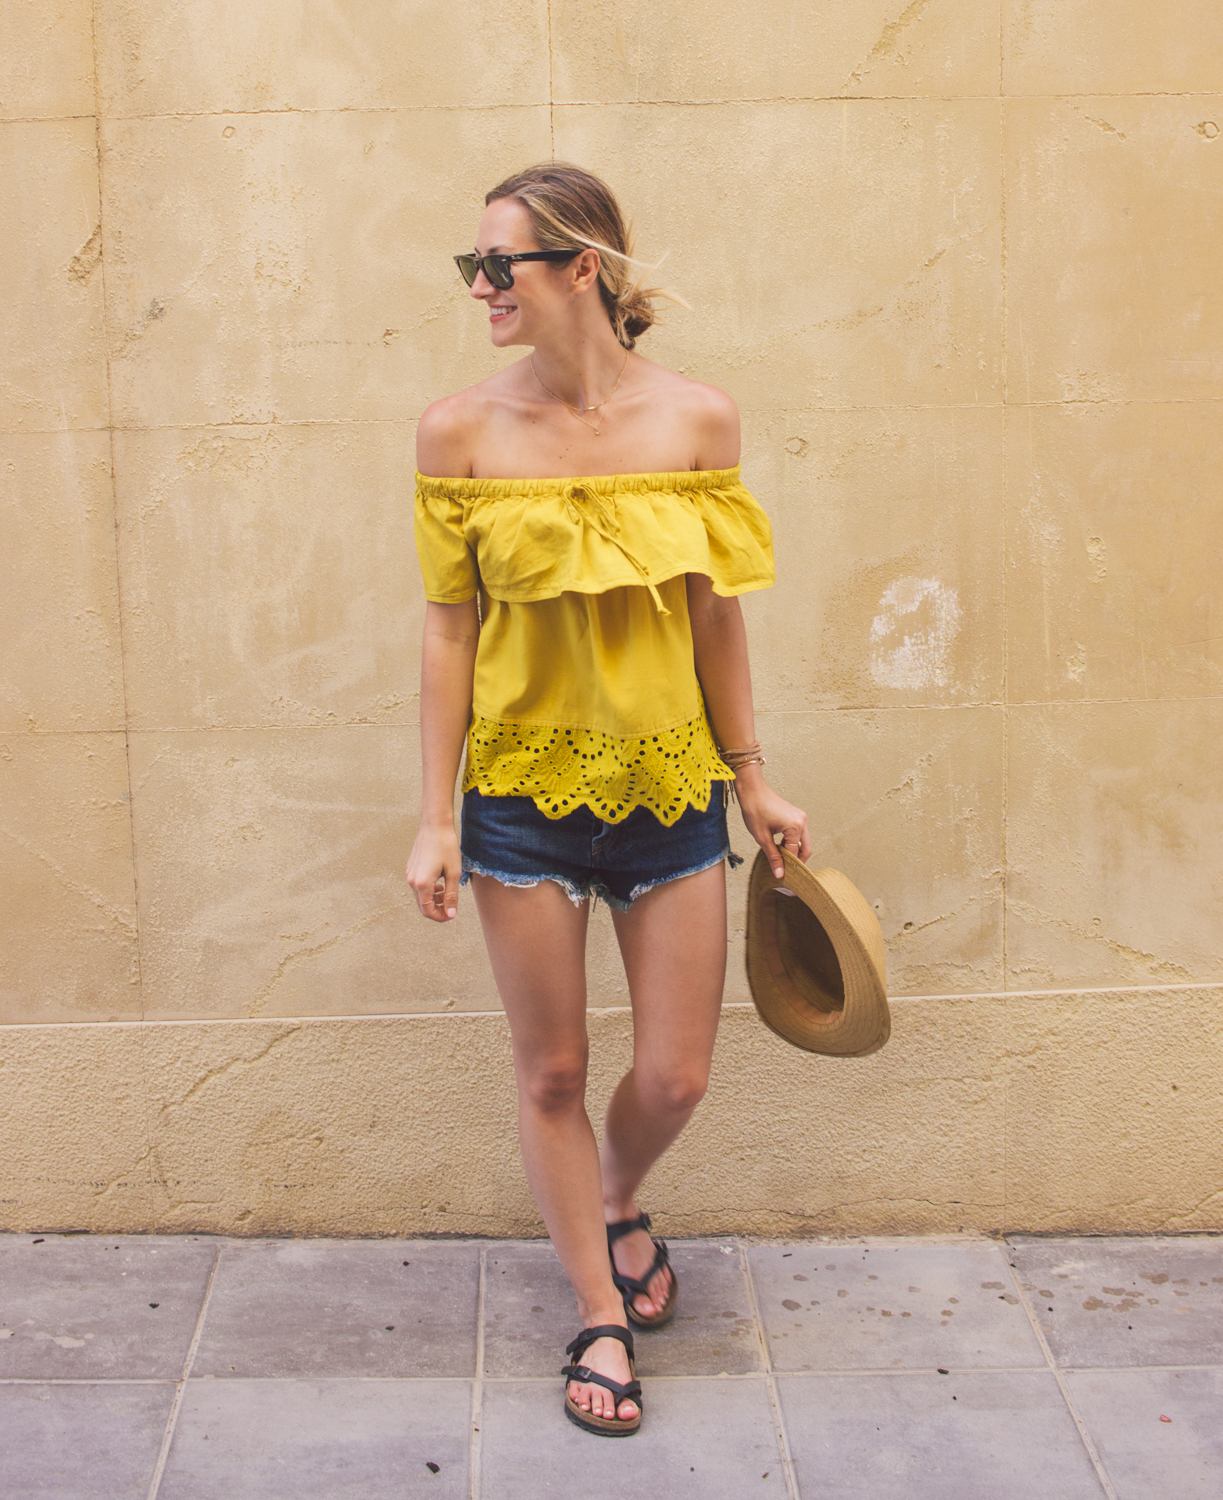 livvyland-blog-olivia-watson-fashion-blogger-austin-texas-cartagena-spain-princess-cruises-mediterranean-madewell-off-shoulder-top-18